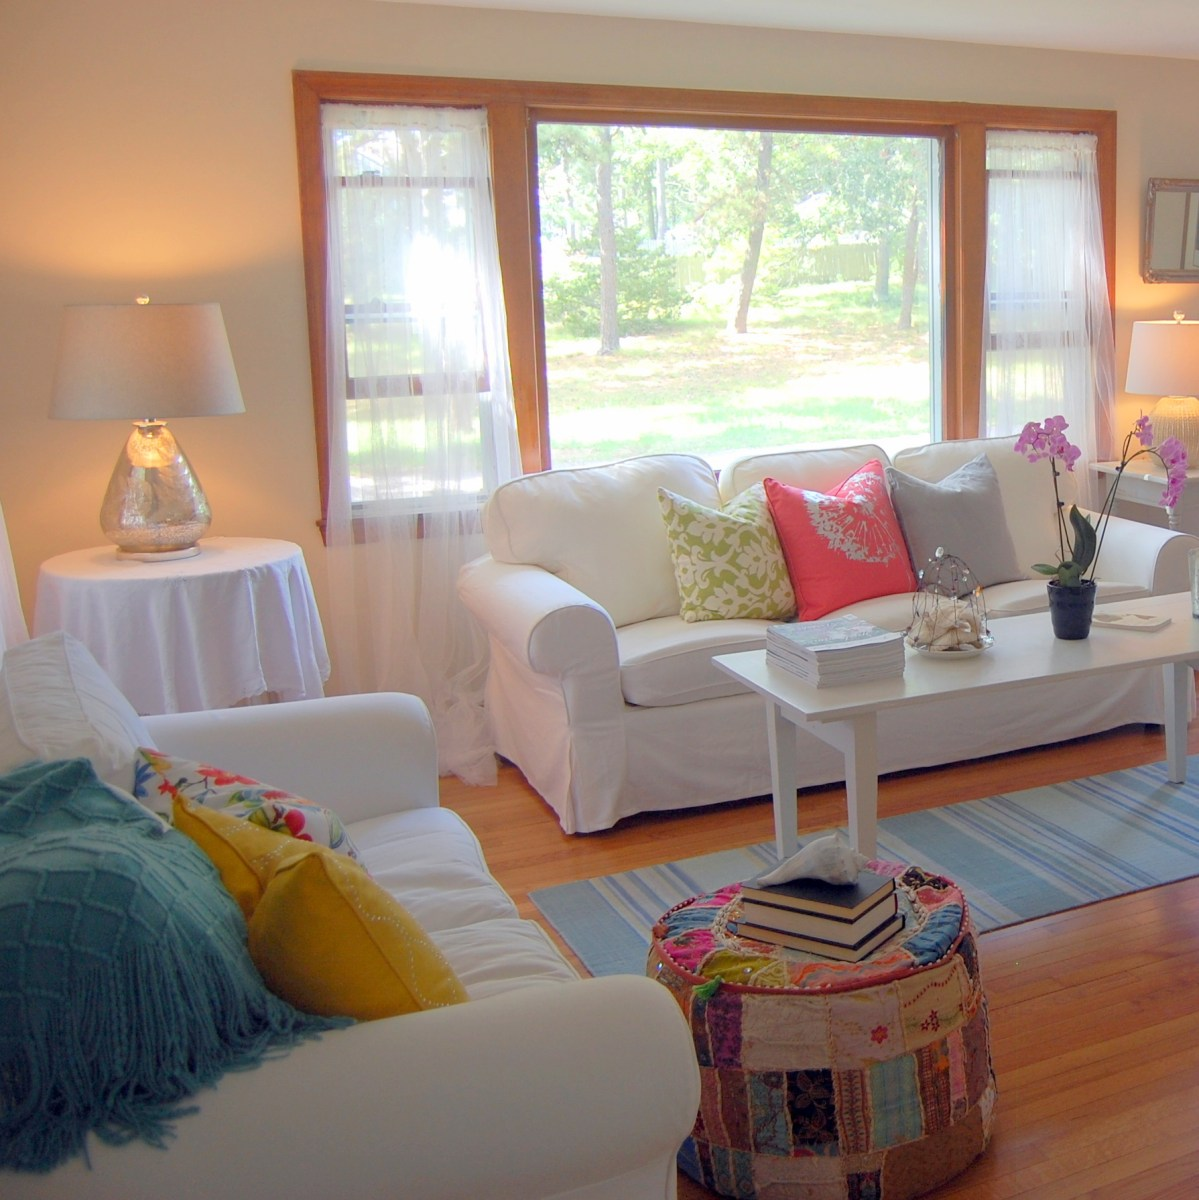 Professional home stager serving Dennis, Cape Cod and surrounding areas